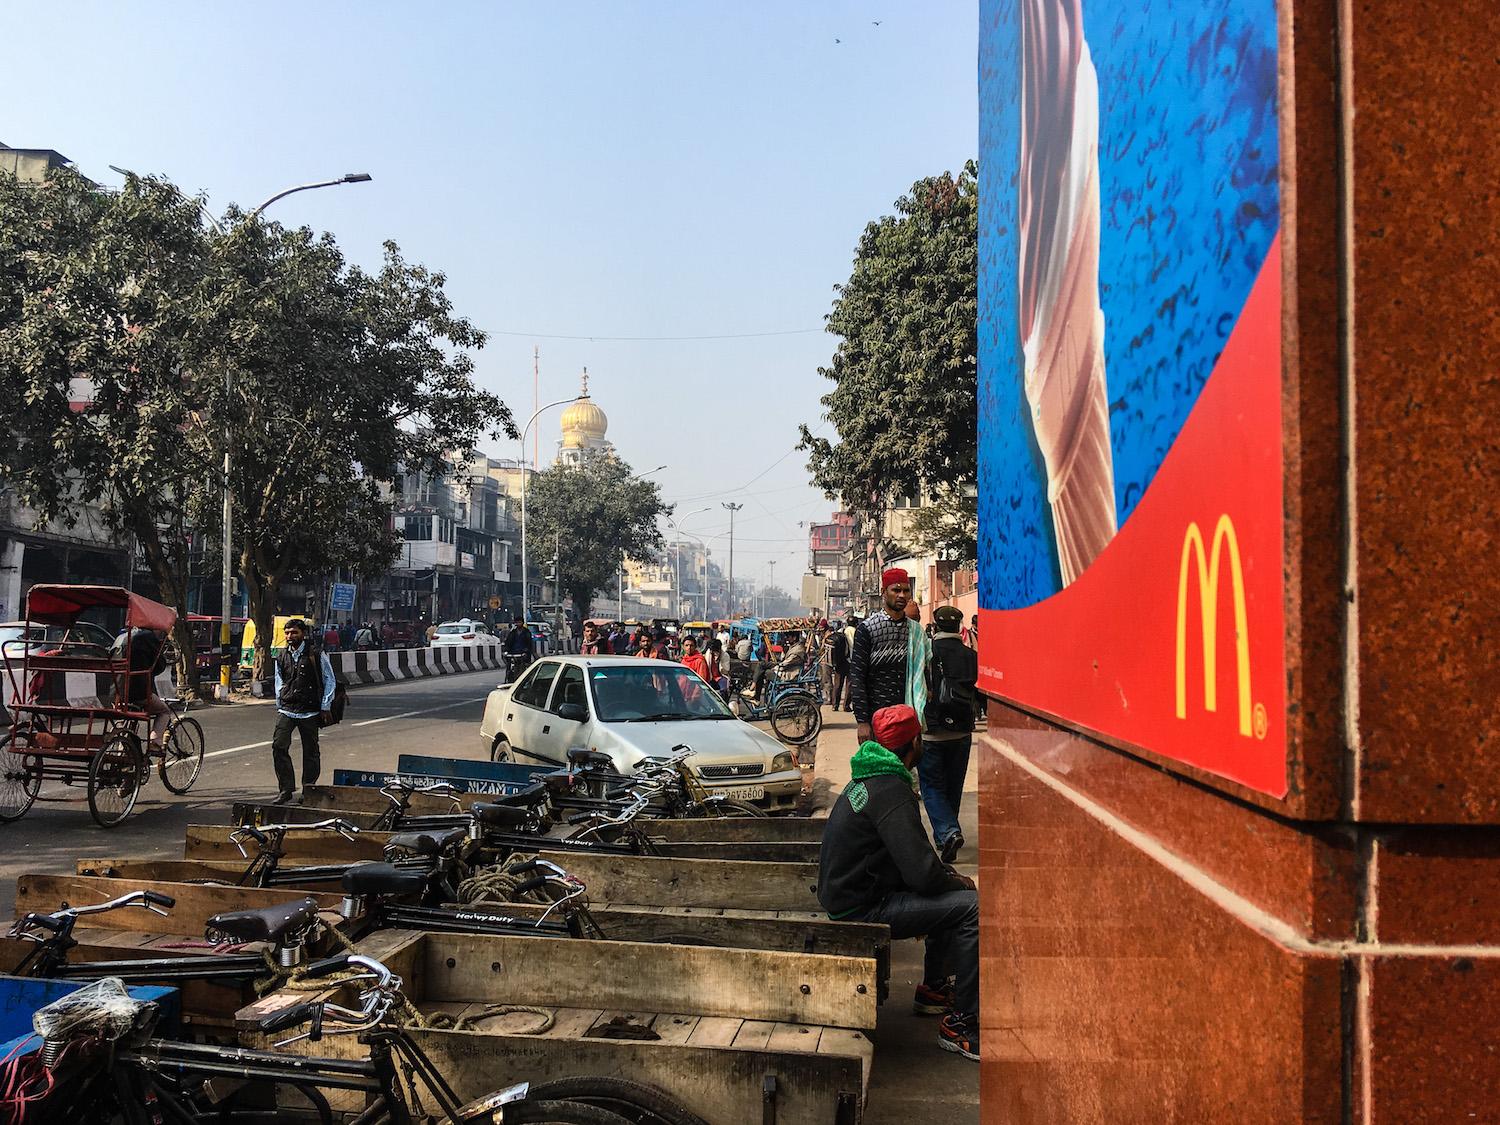 Ah yes, some authentic Old Delhi street food, Mickey Ds, with Gurudwara Sis Ganj Sahib in the background.